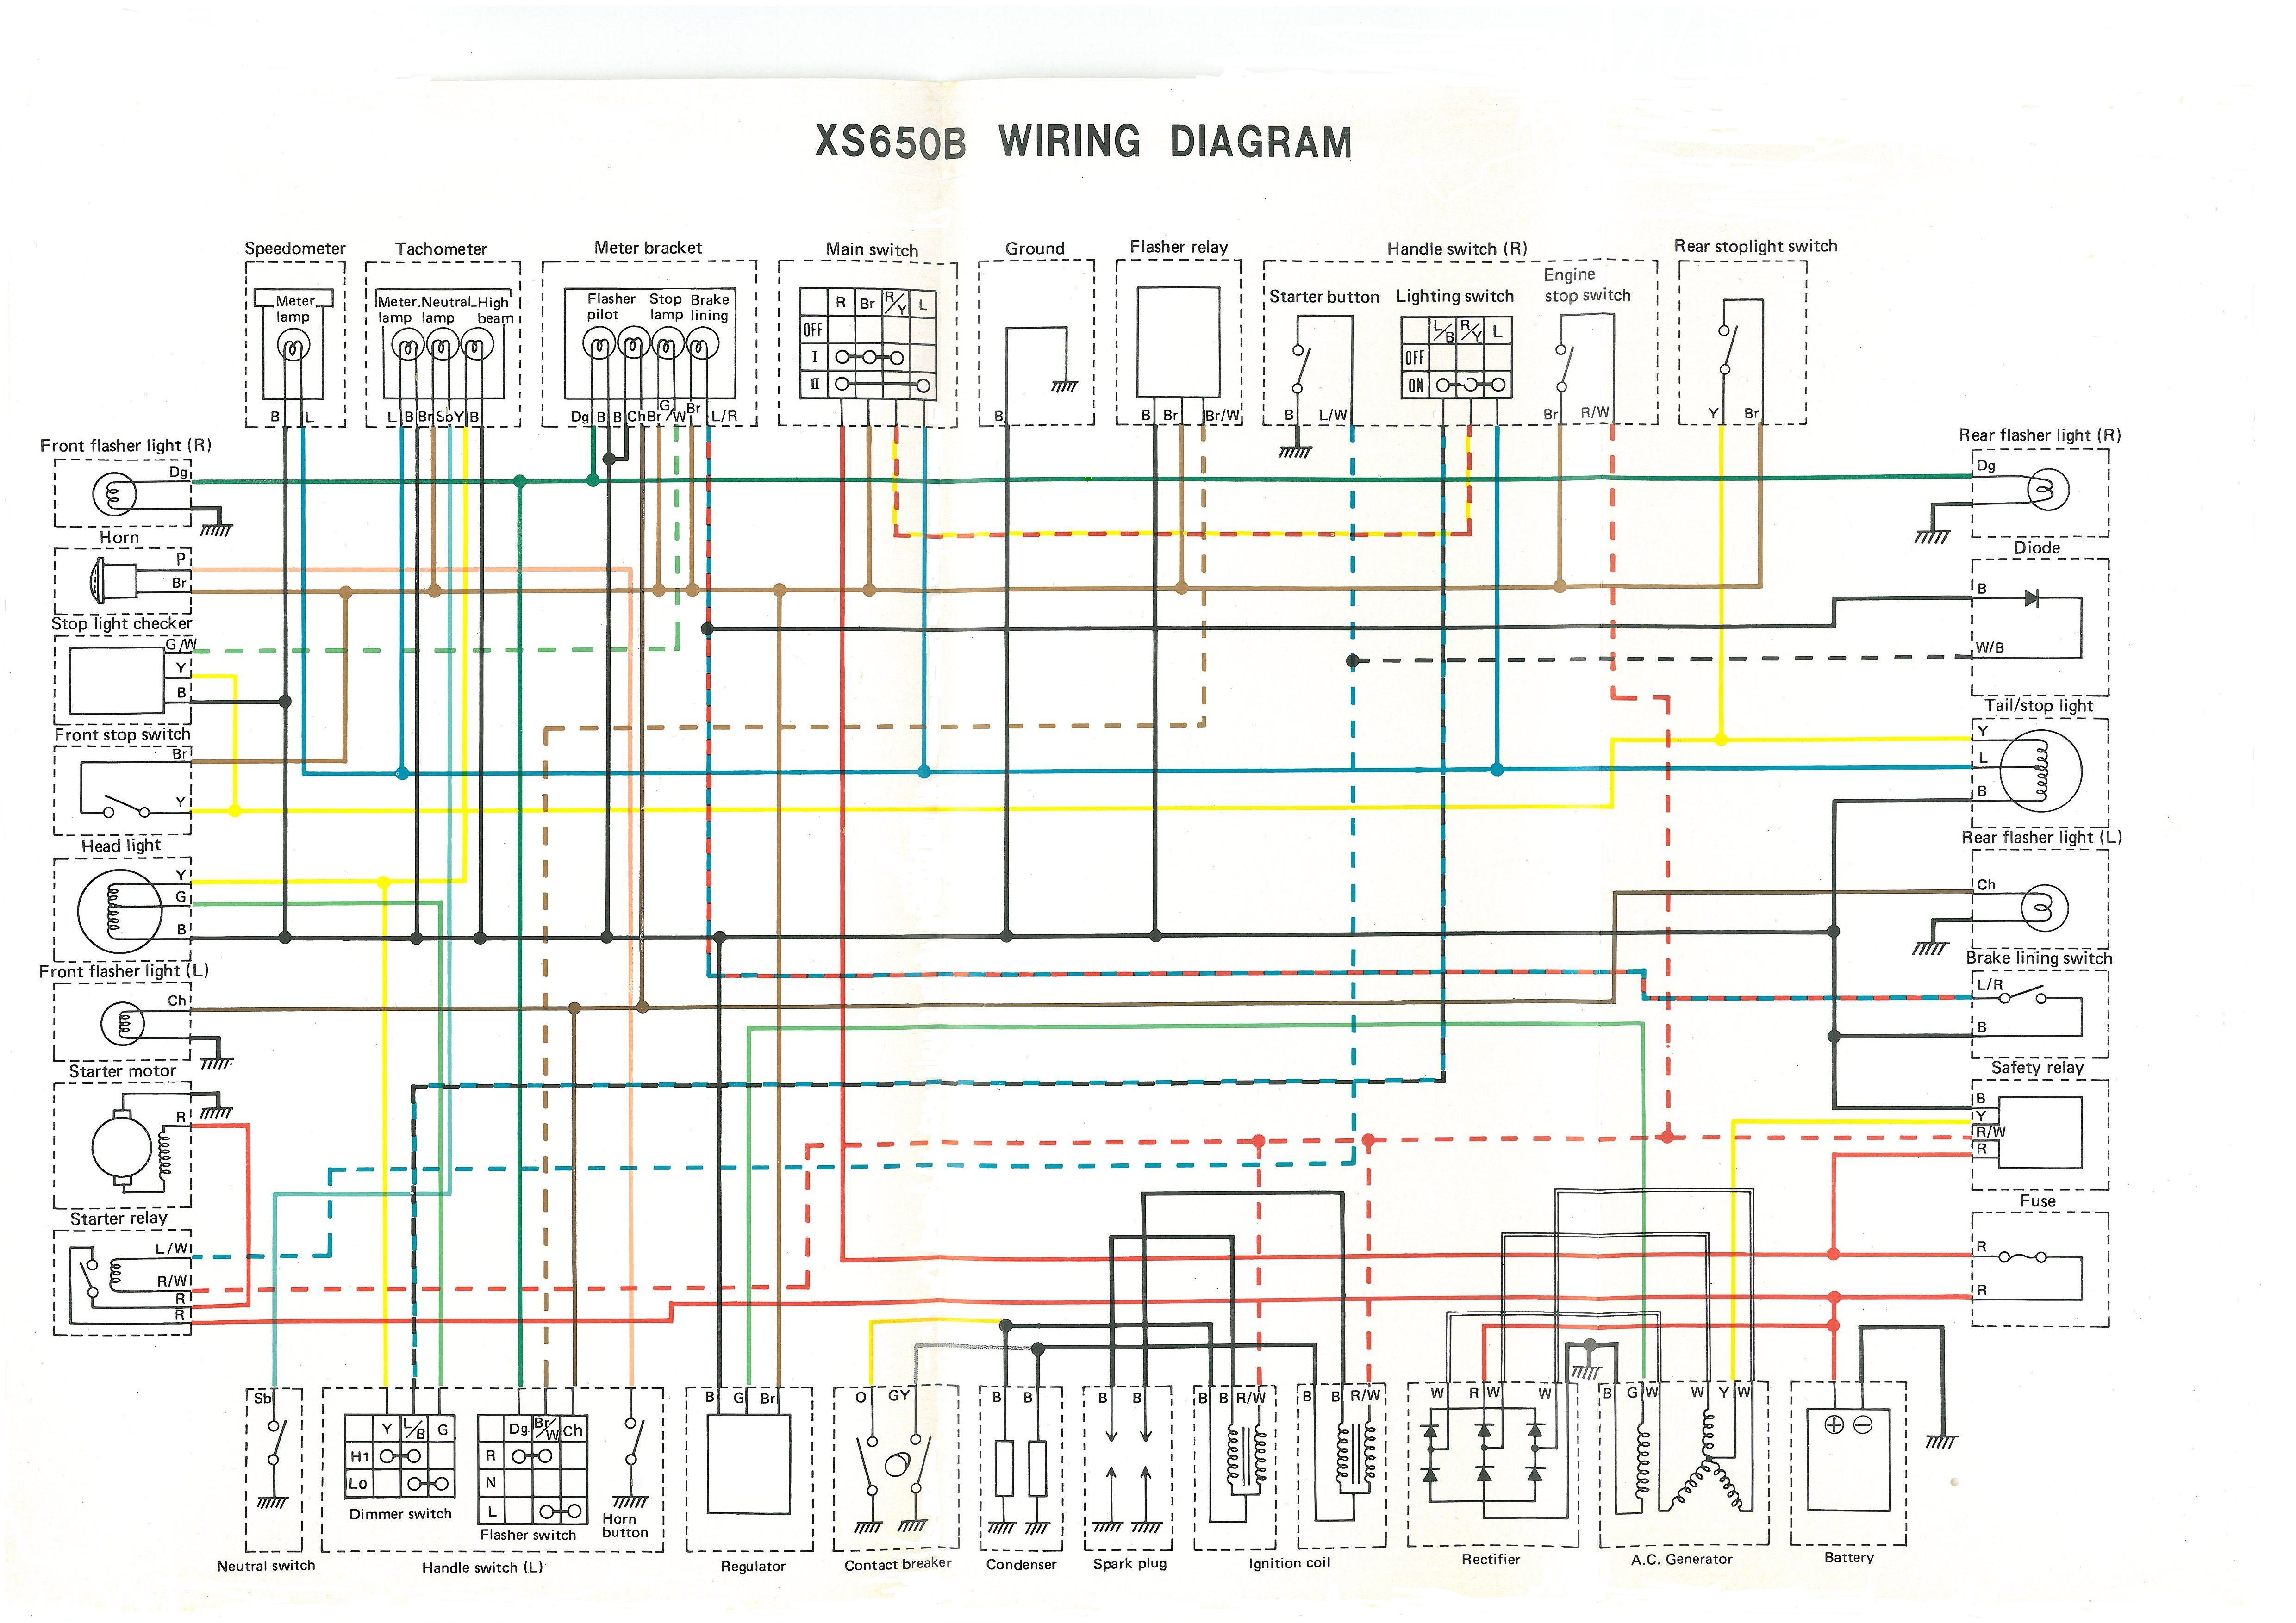 Xs360 Wiring Diagram Wiring Diagram Schematics Toshiba Wiring Diagram 1972  Yamaha 400 Wiring Diagram